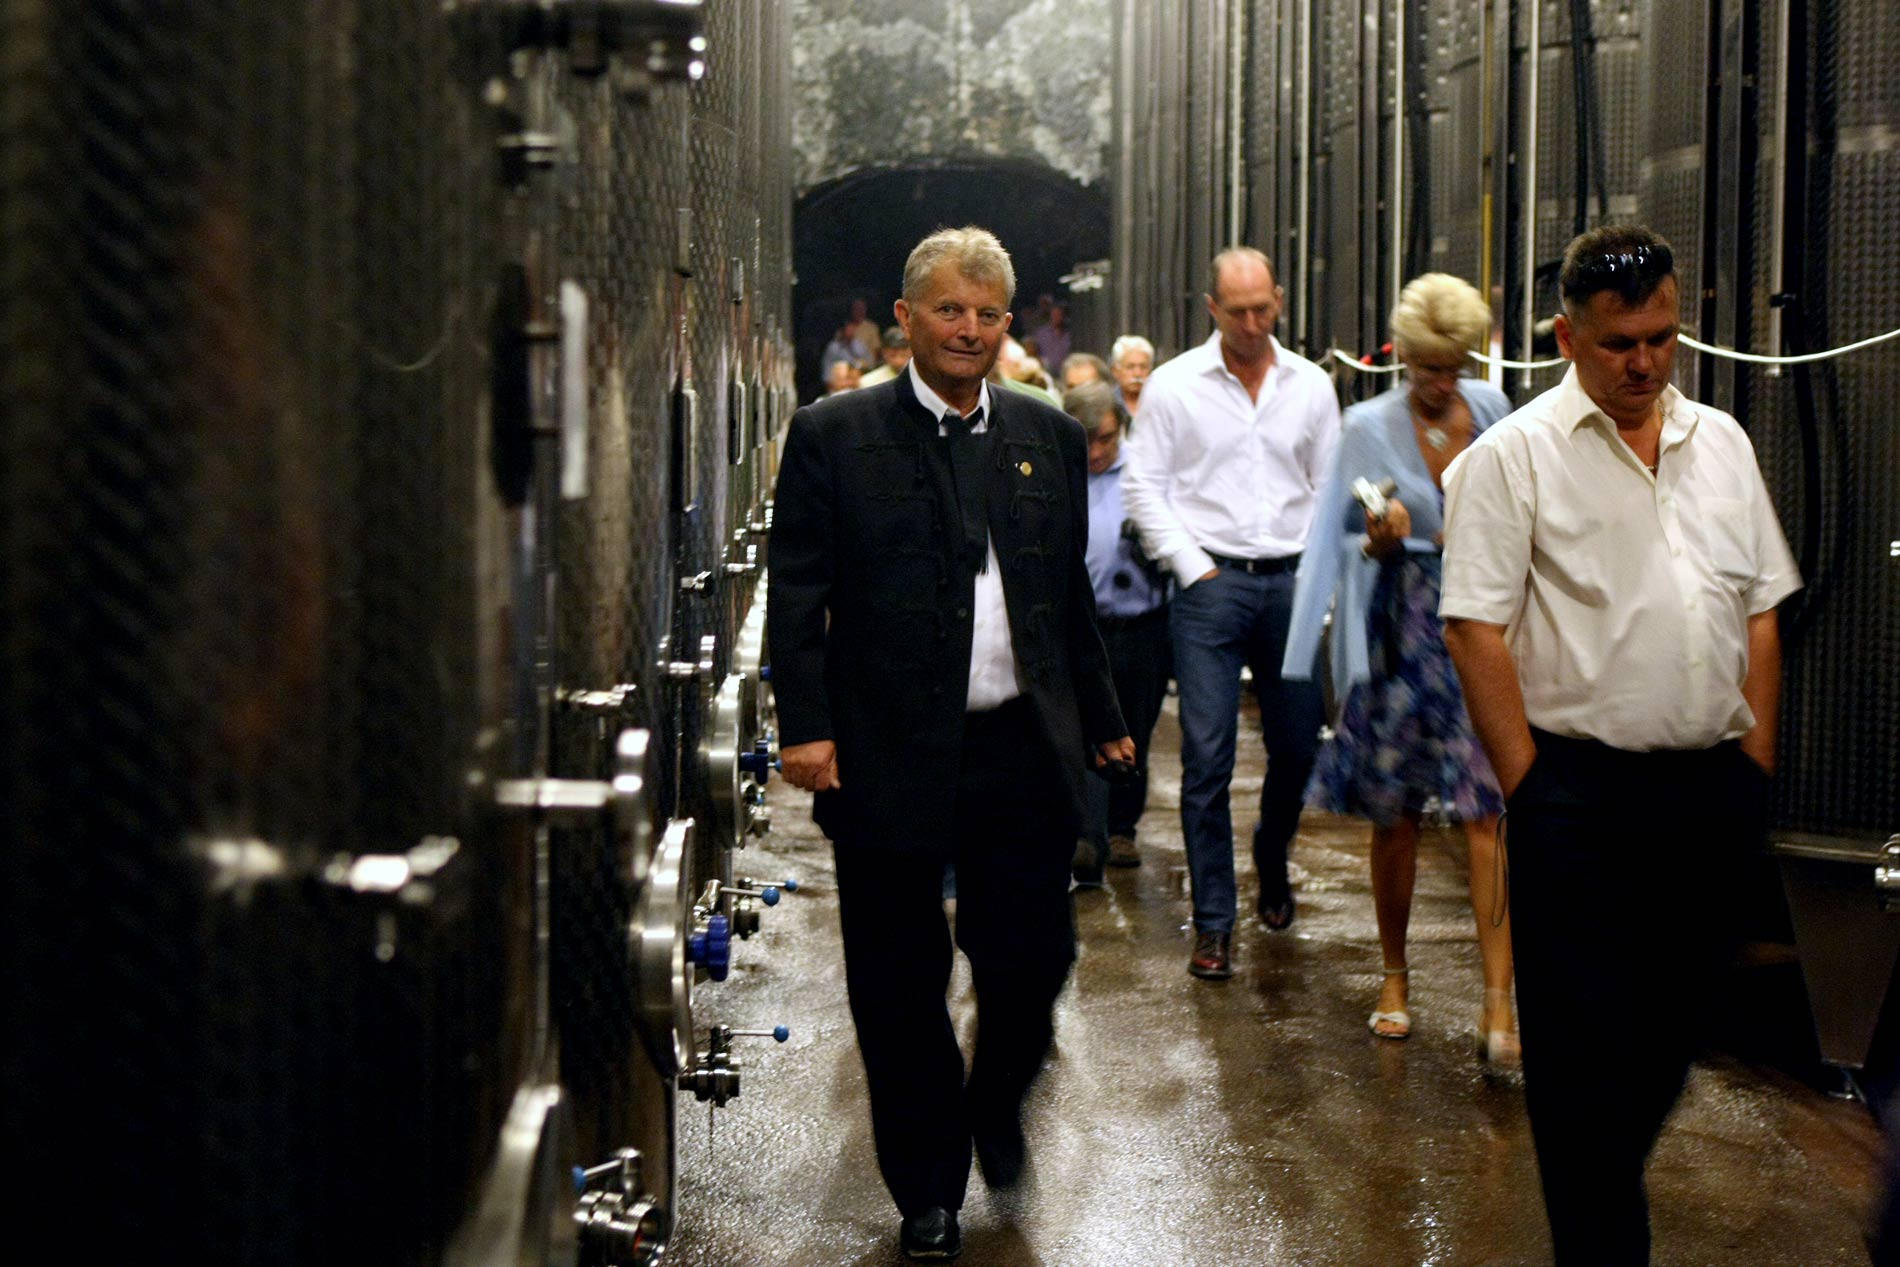 Walking in the cellar with guests